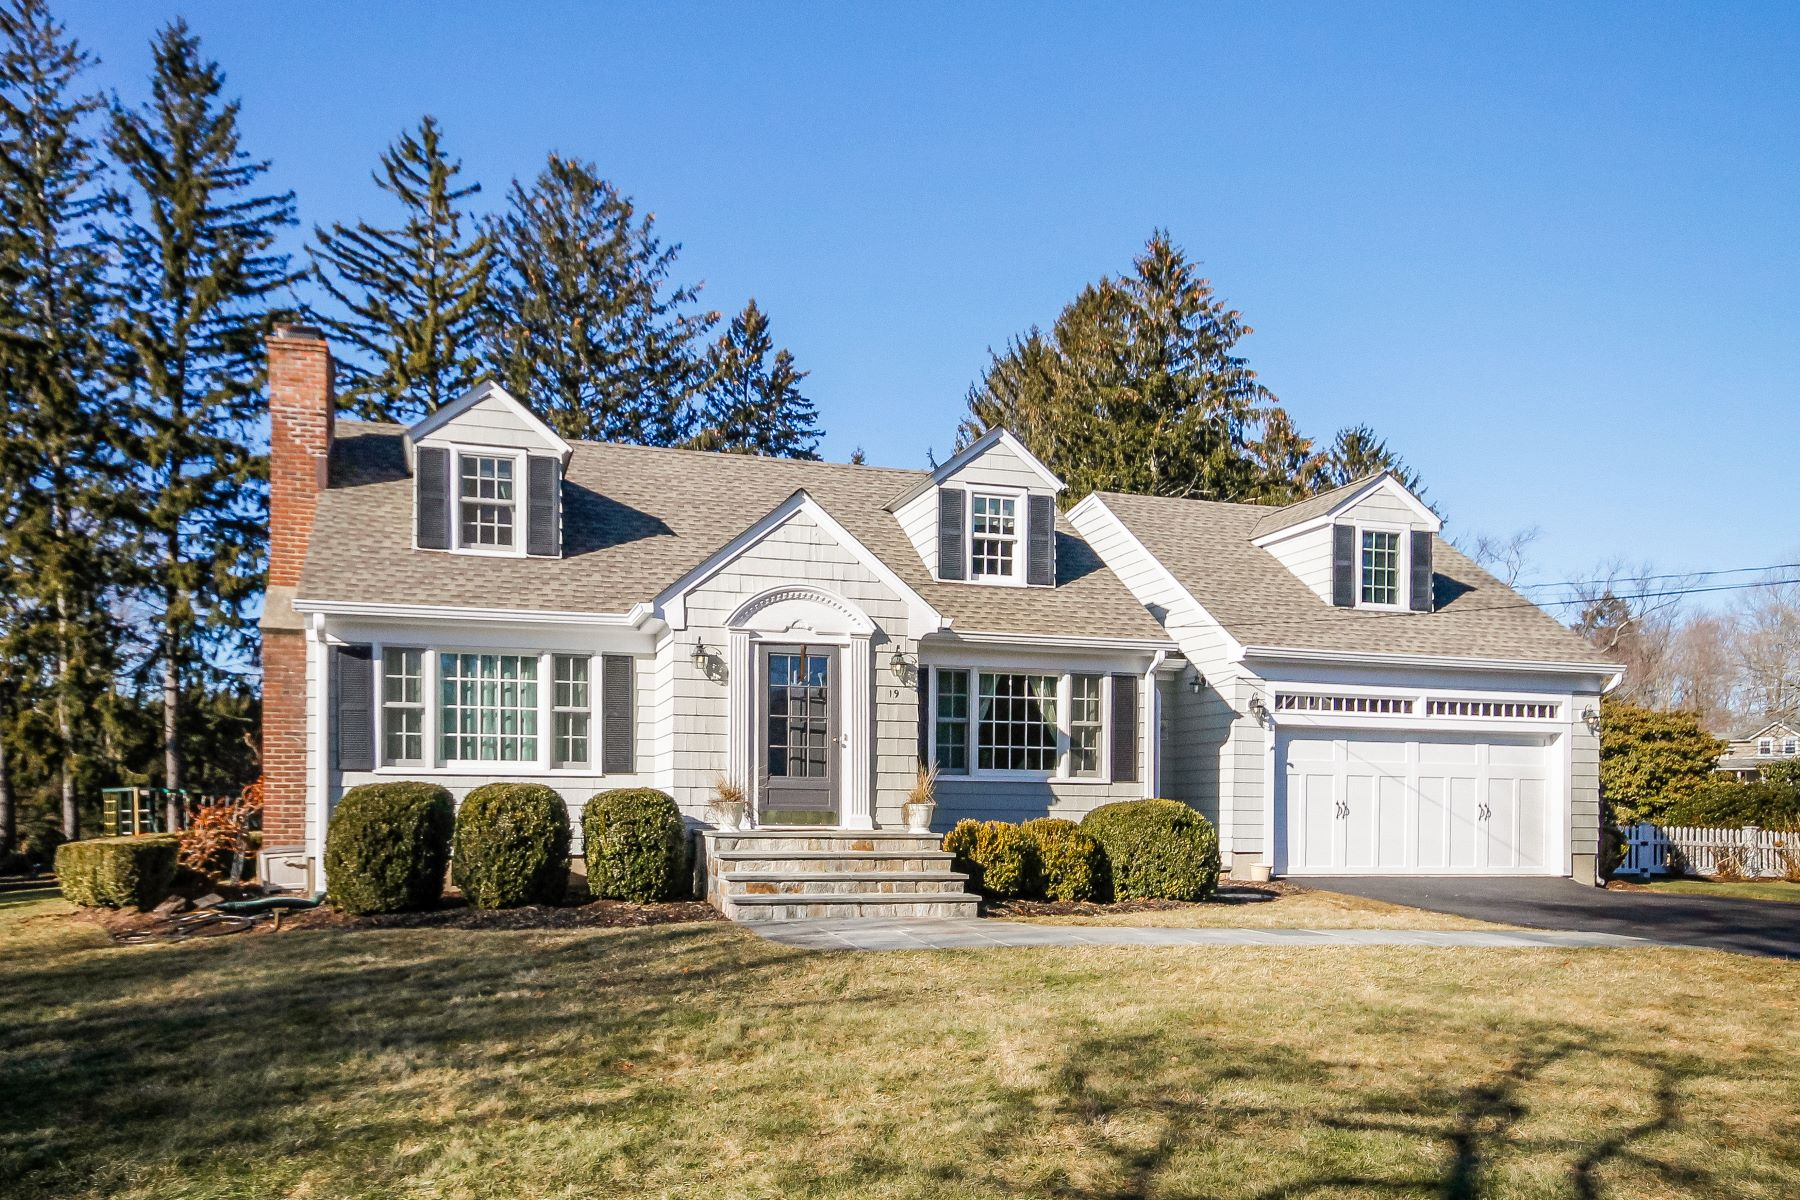 Single Family Home for Sale at Such A Surprise! 19 Old Orchard Road Easton, Connecticut 06612 United States